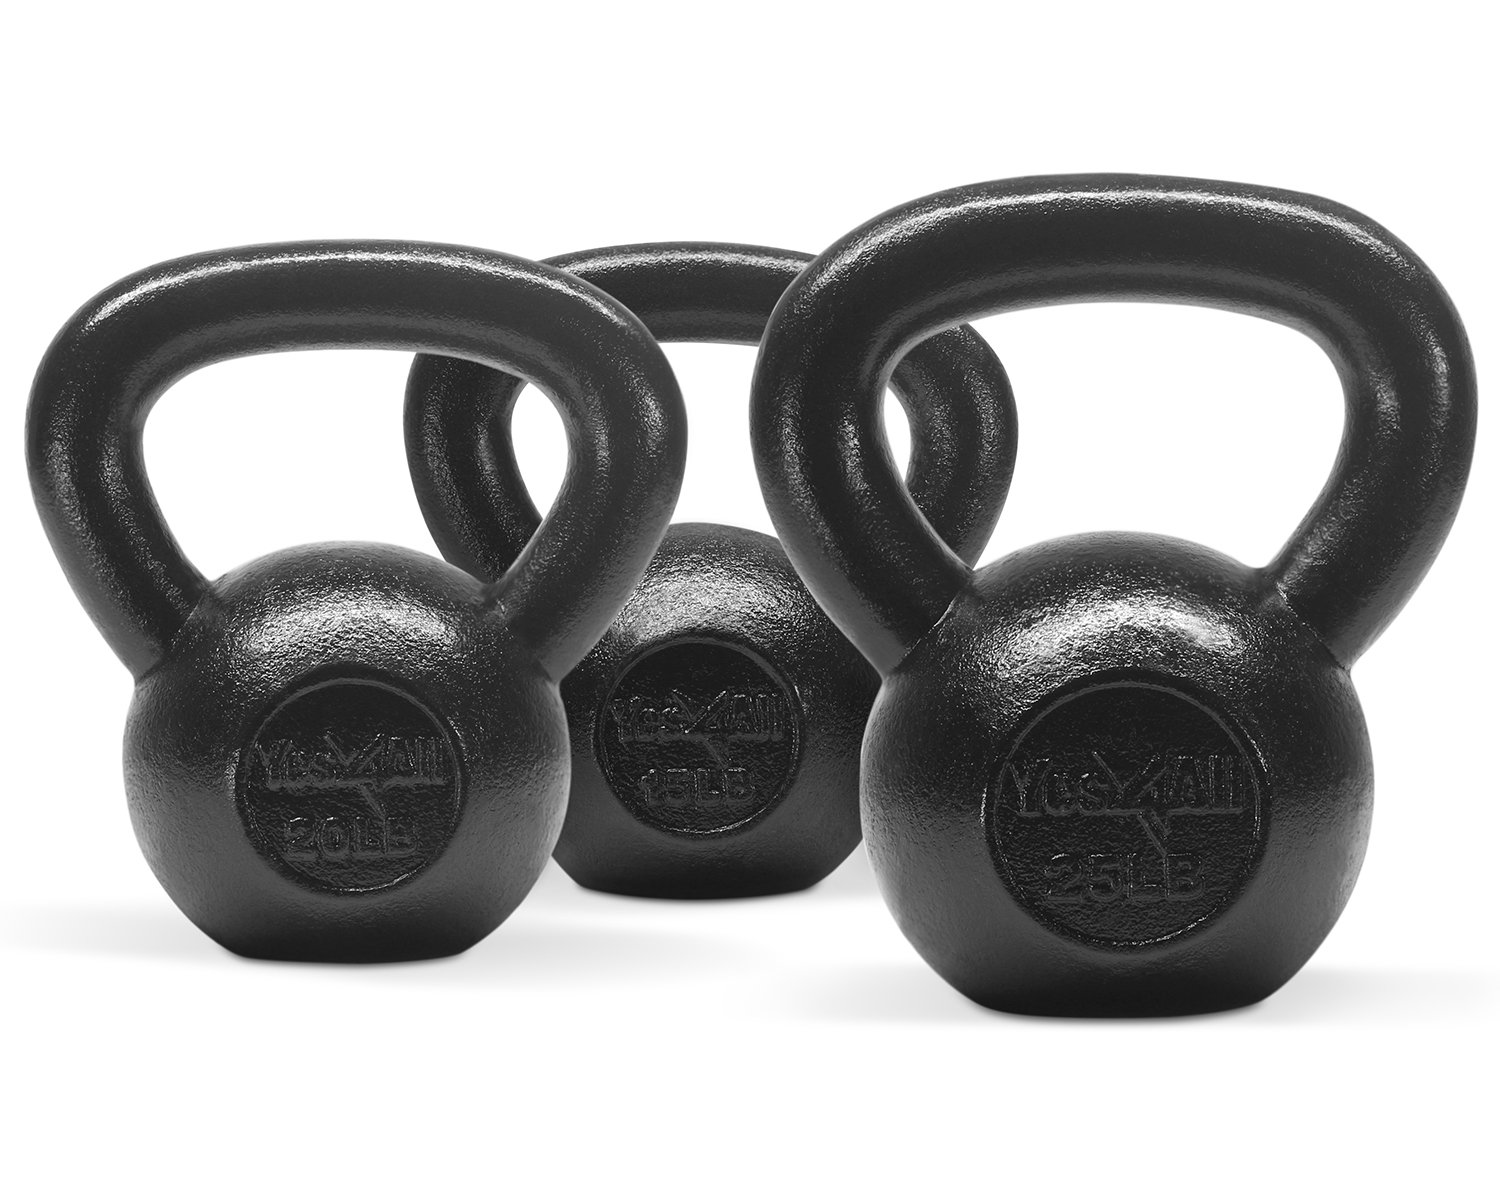 Yes4All Combo Cast Iron Kettlebell Weight Sets – Great for Full Body Workout and Strength Training – Kettlebells 15 20 25 lbs (Black)